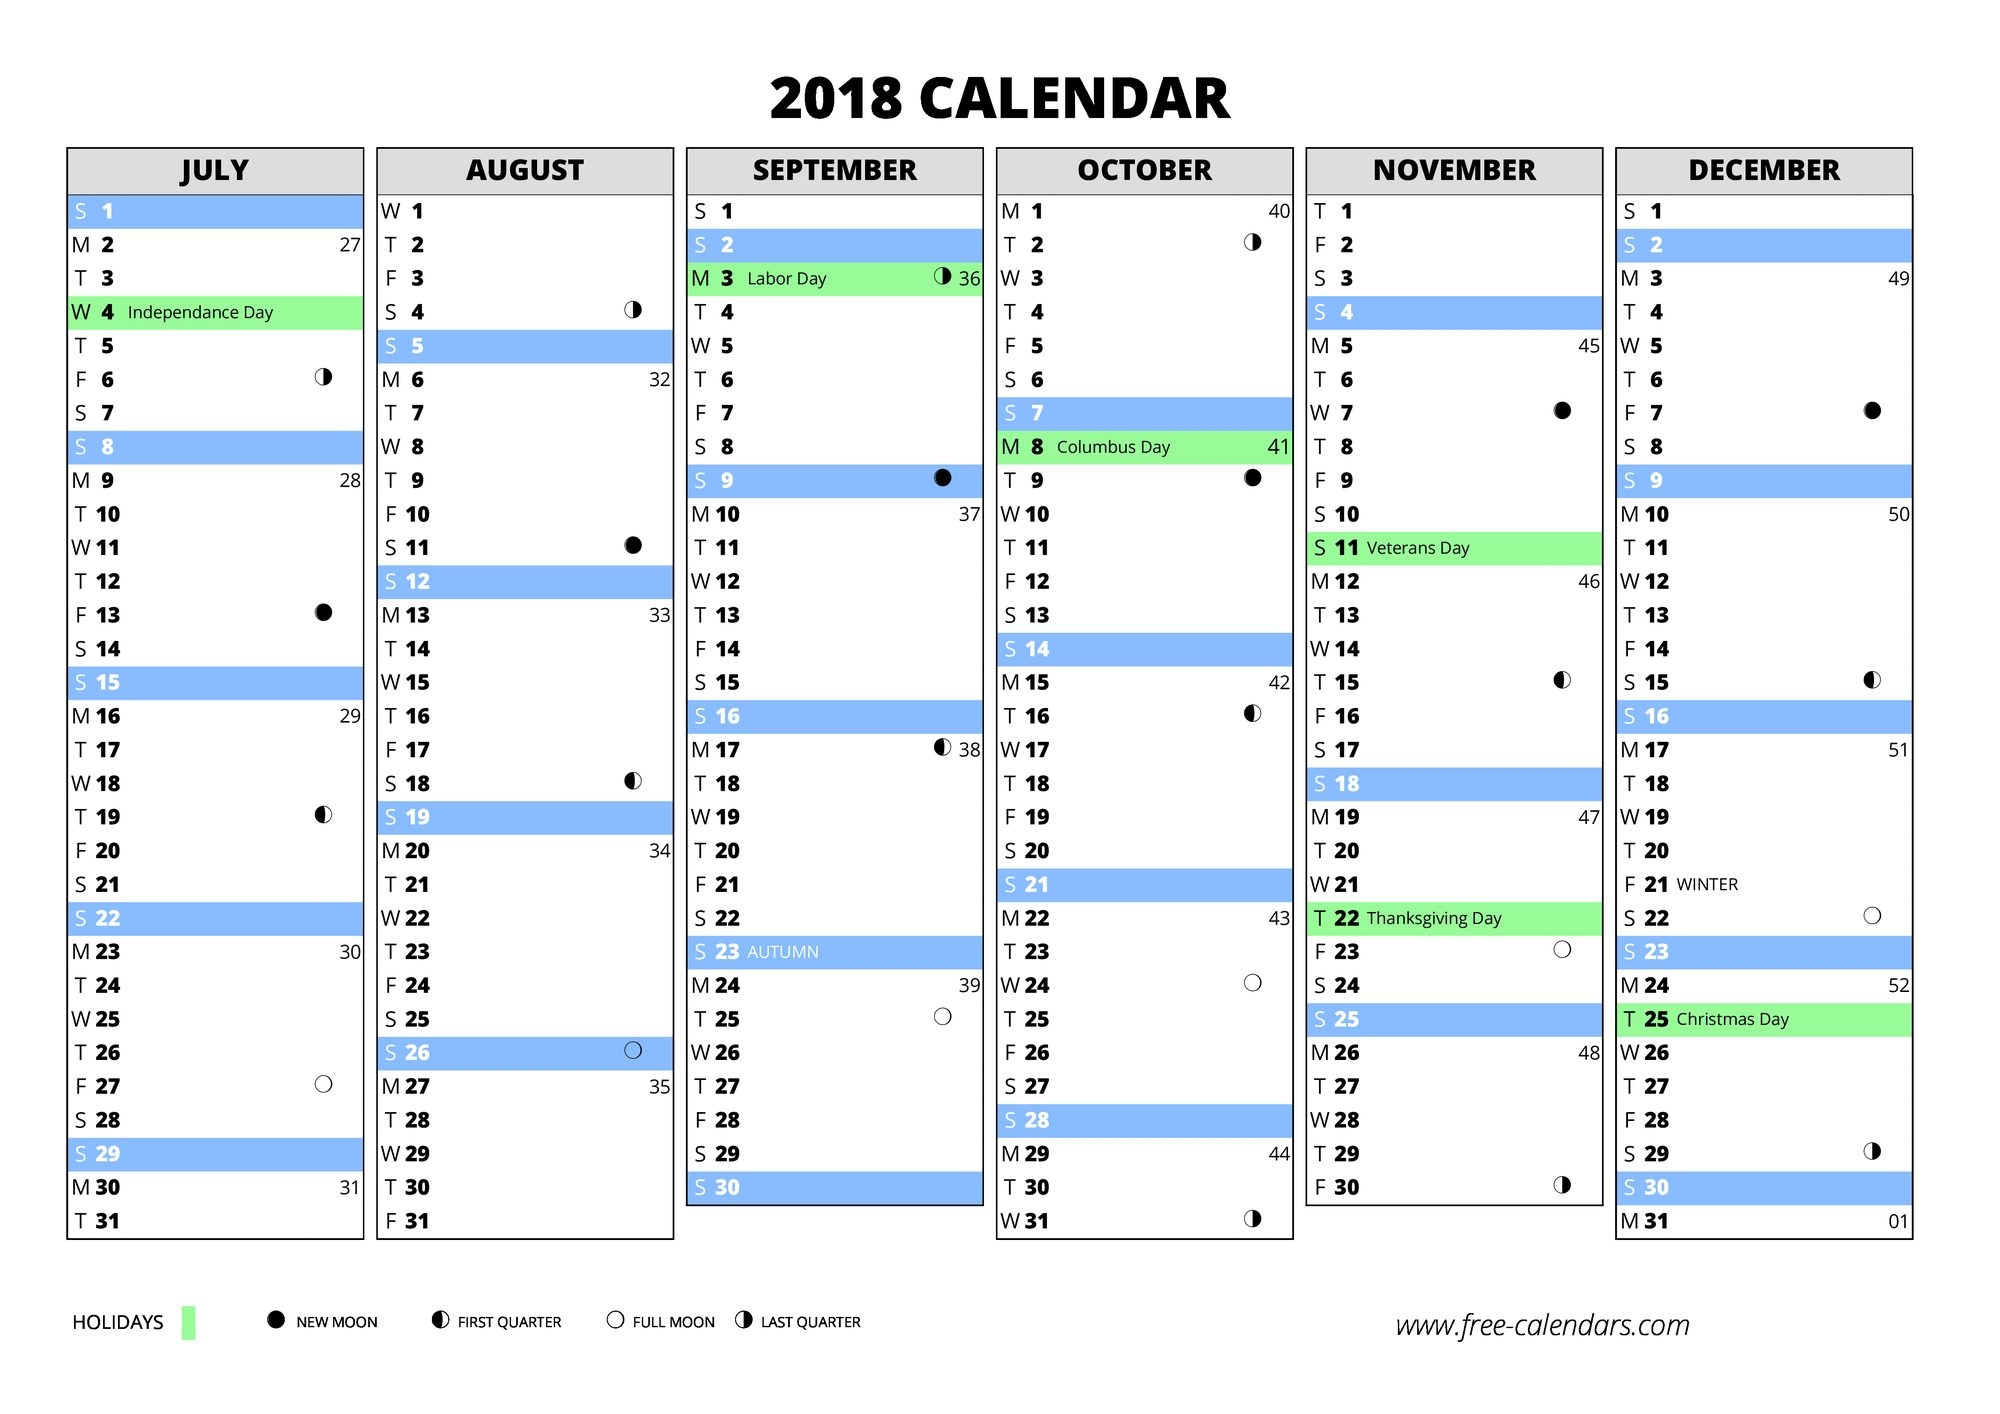 monthly calendar template excel 2018 shefftunestk 2018 Yearly Calendar Excel Template erdferdf